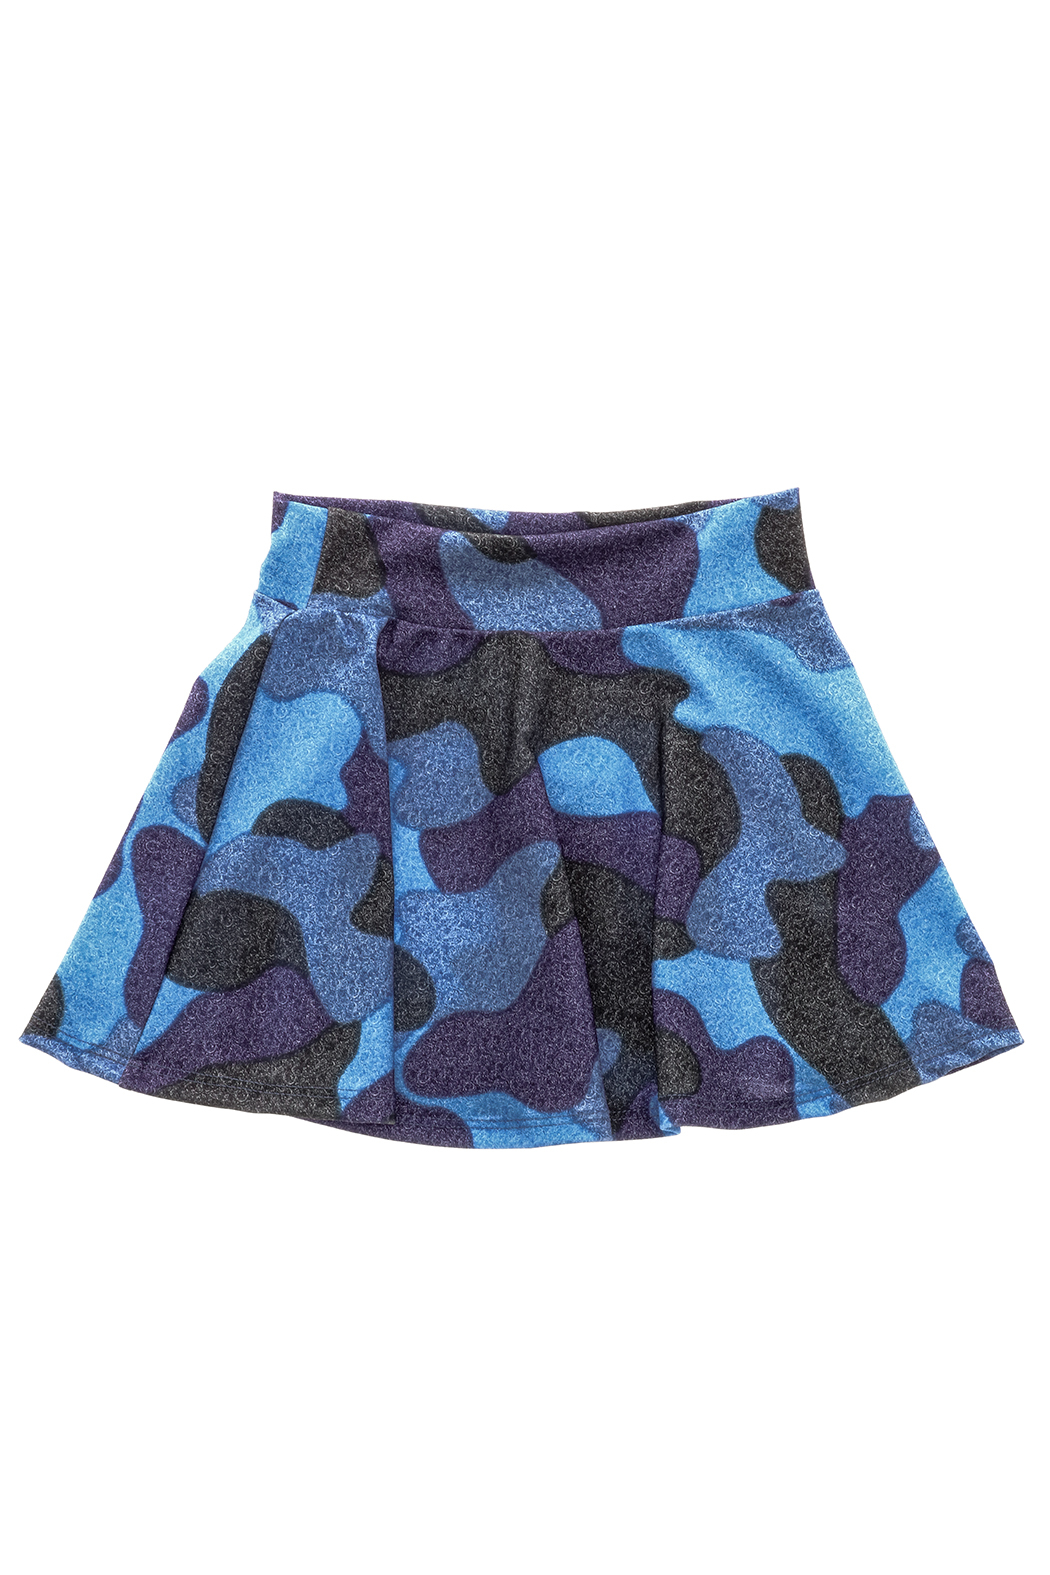 Rock Candy Blue Camo Skirt - Back Cropped Image